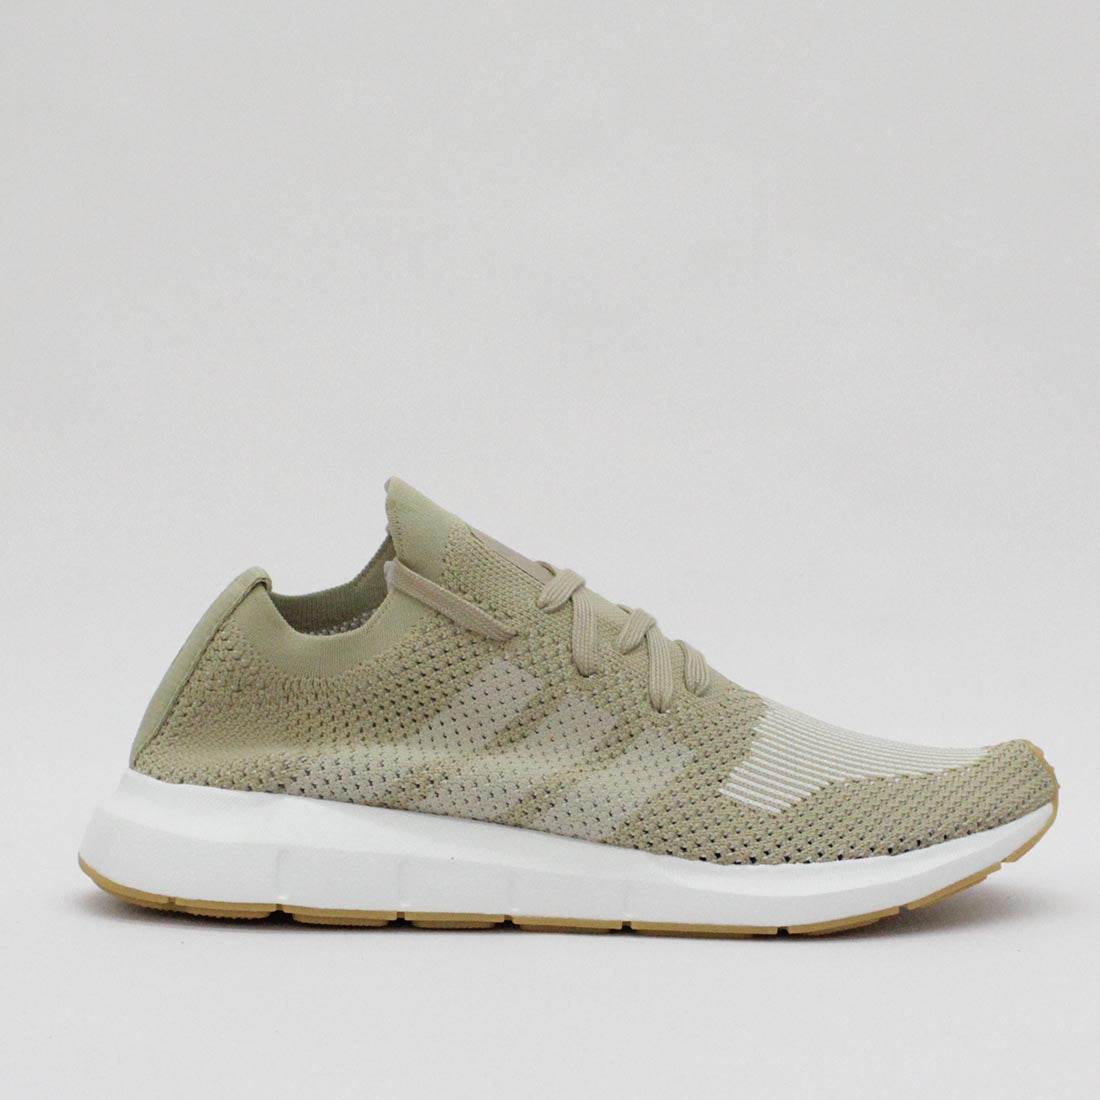 Adidas Originals Swift Run PK Gold CQ2890